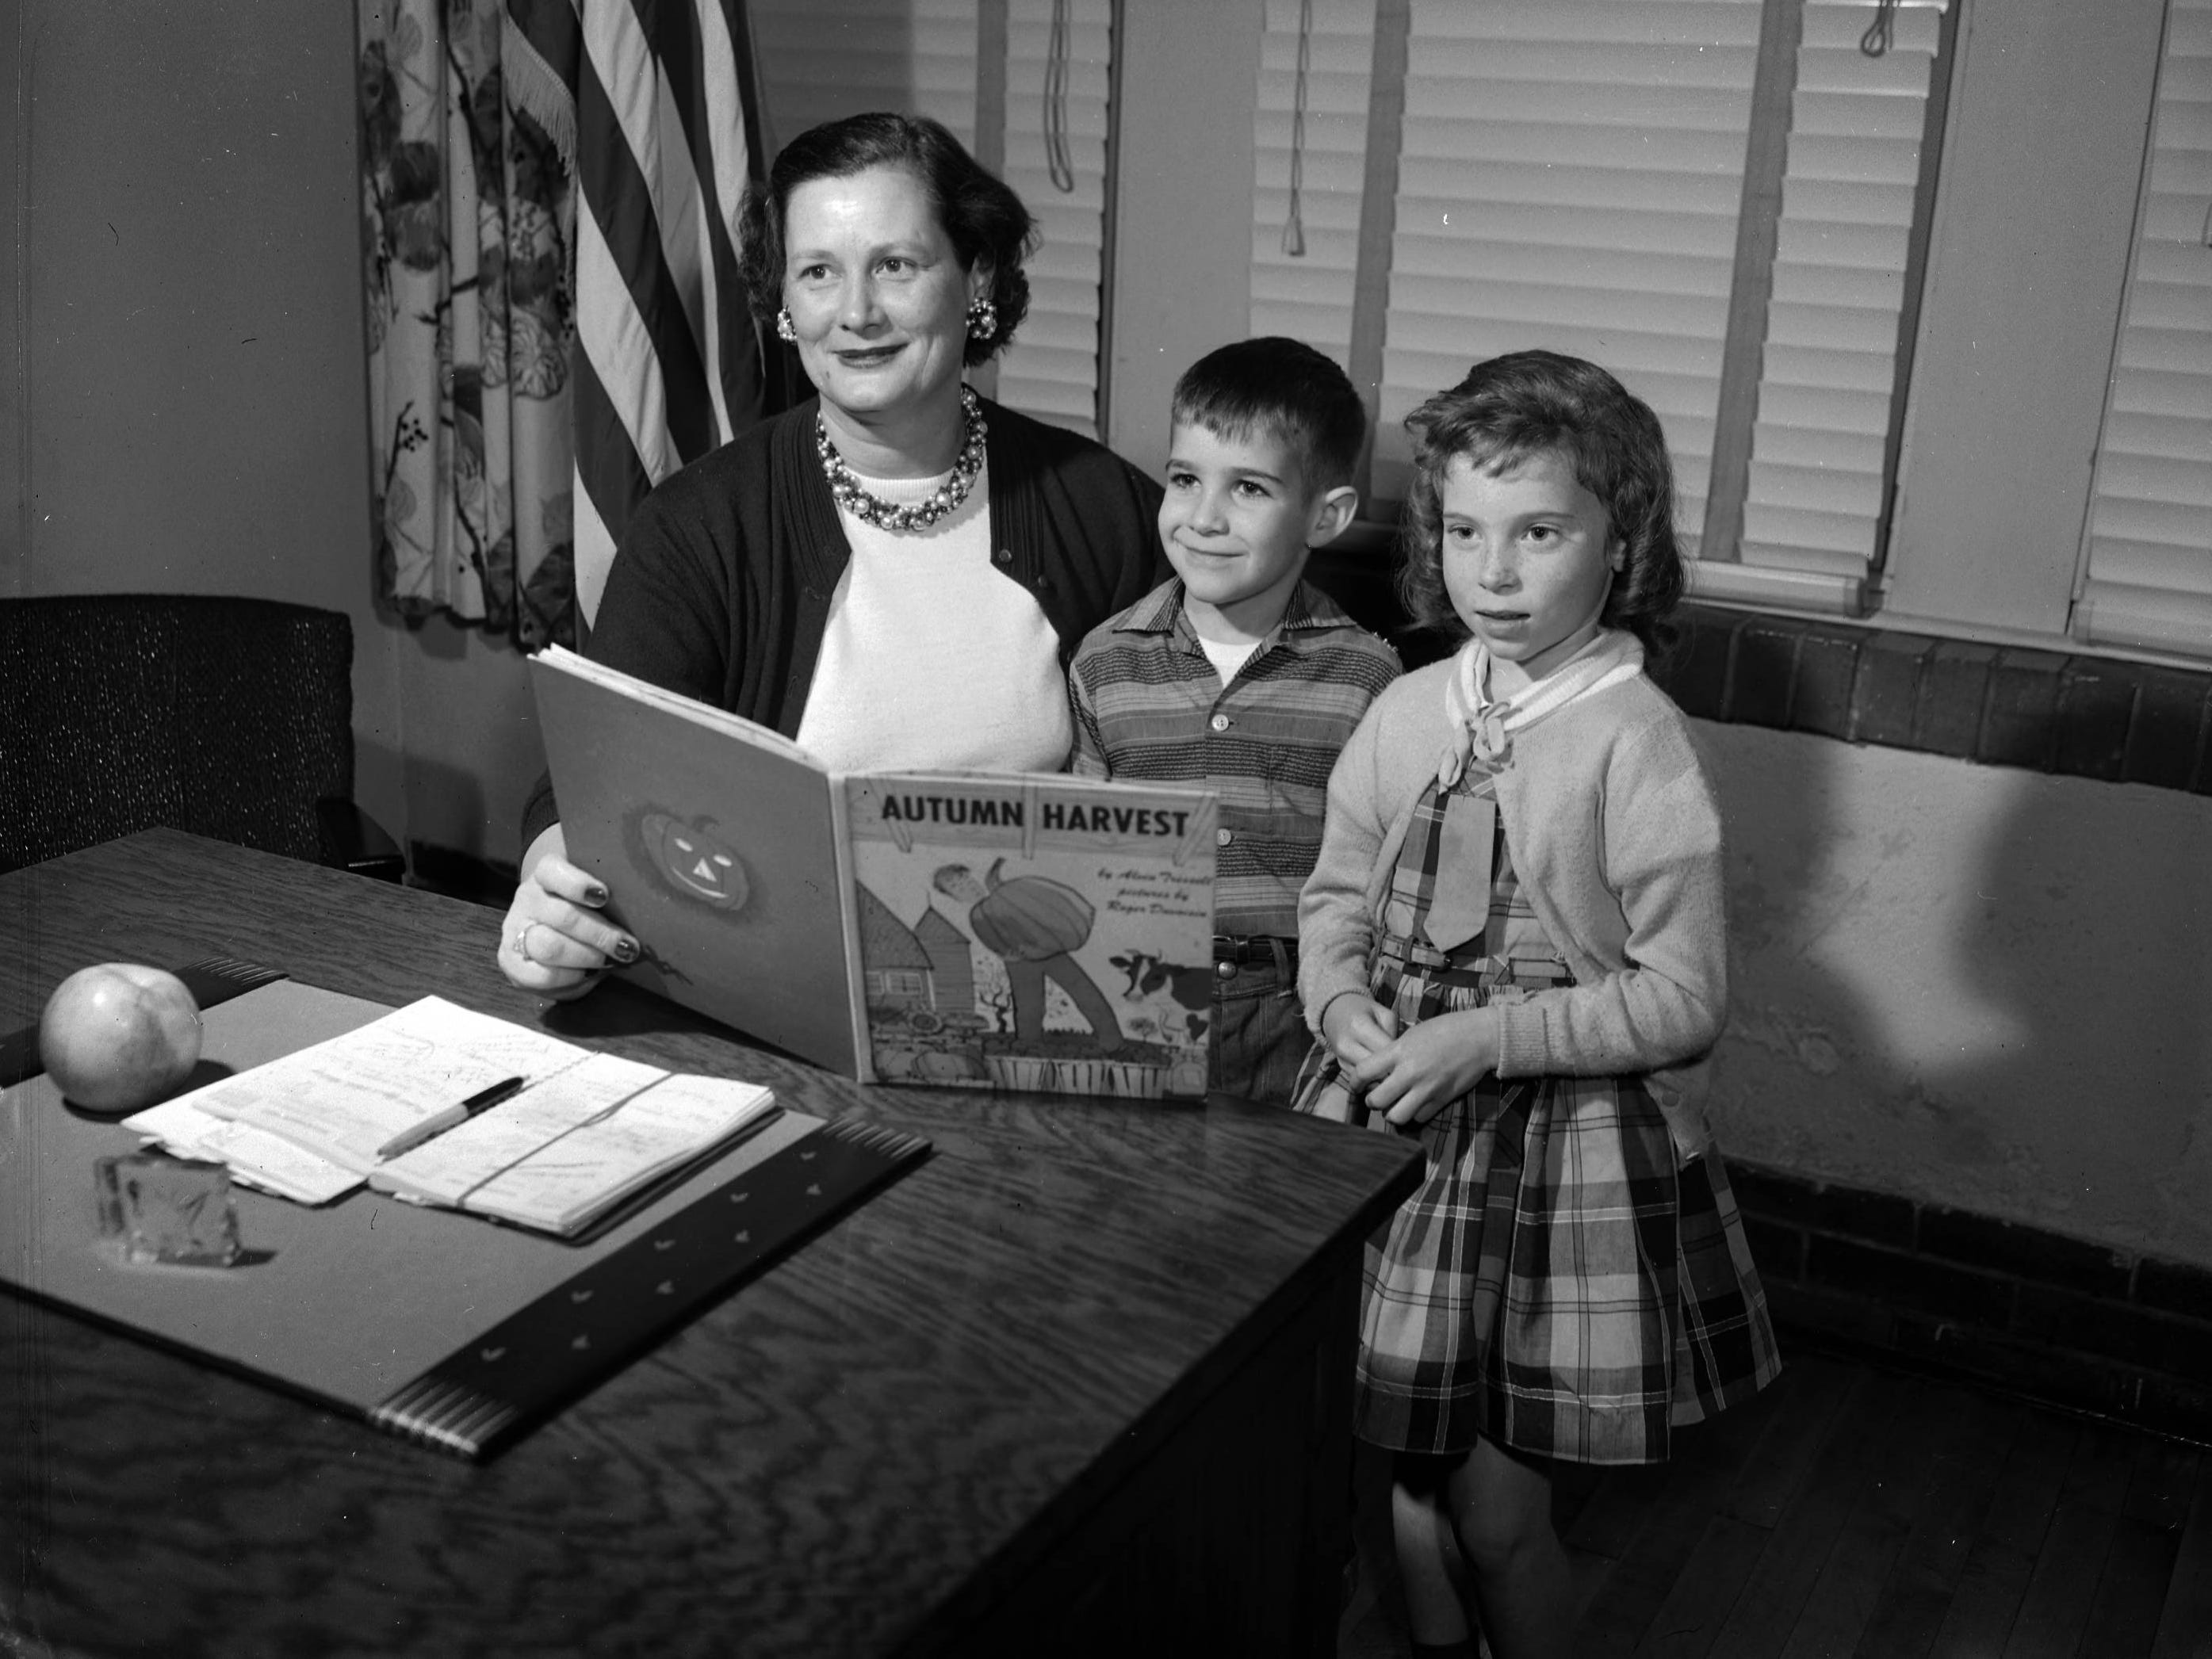 The principal at Boyd School, Virginia Renshaw, reading with two students, Terry Allen Terrill and Ruby Jean Arnold. Published in the News & Leader on November 17, 1957.